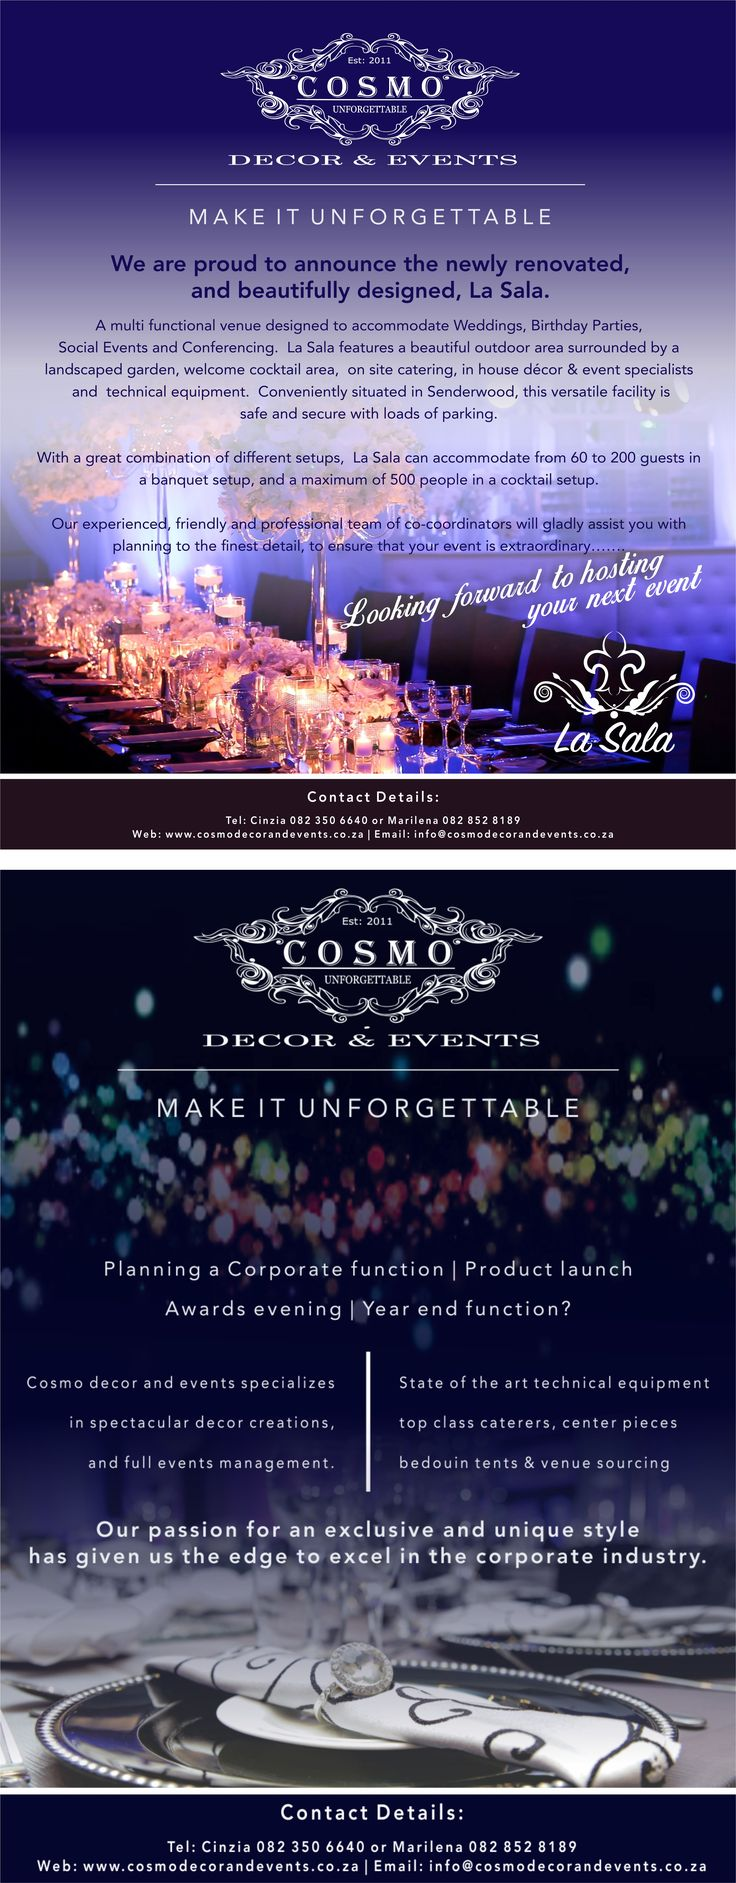 Email flyer. Designed for a client of CopyCatz, Plumstead. I am the designer. #emailflyer #design #eventmanagement #bight #functions